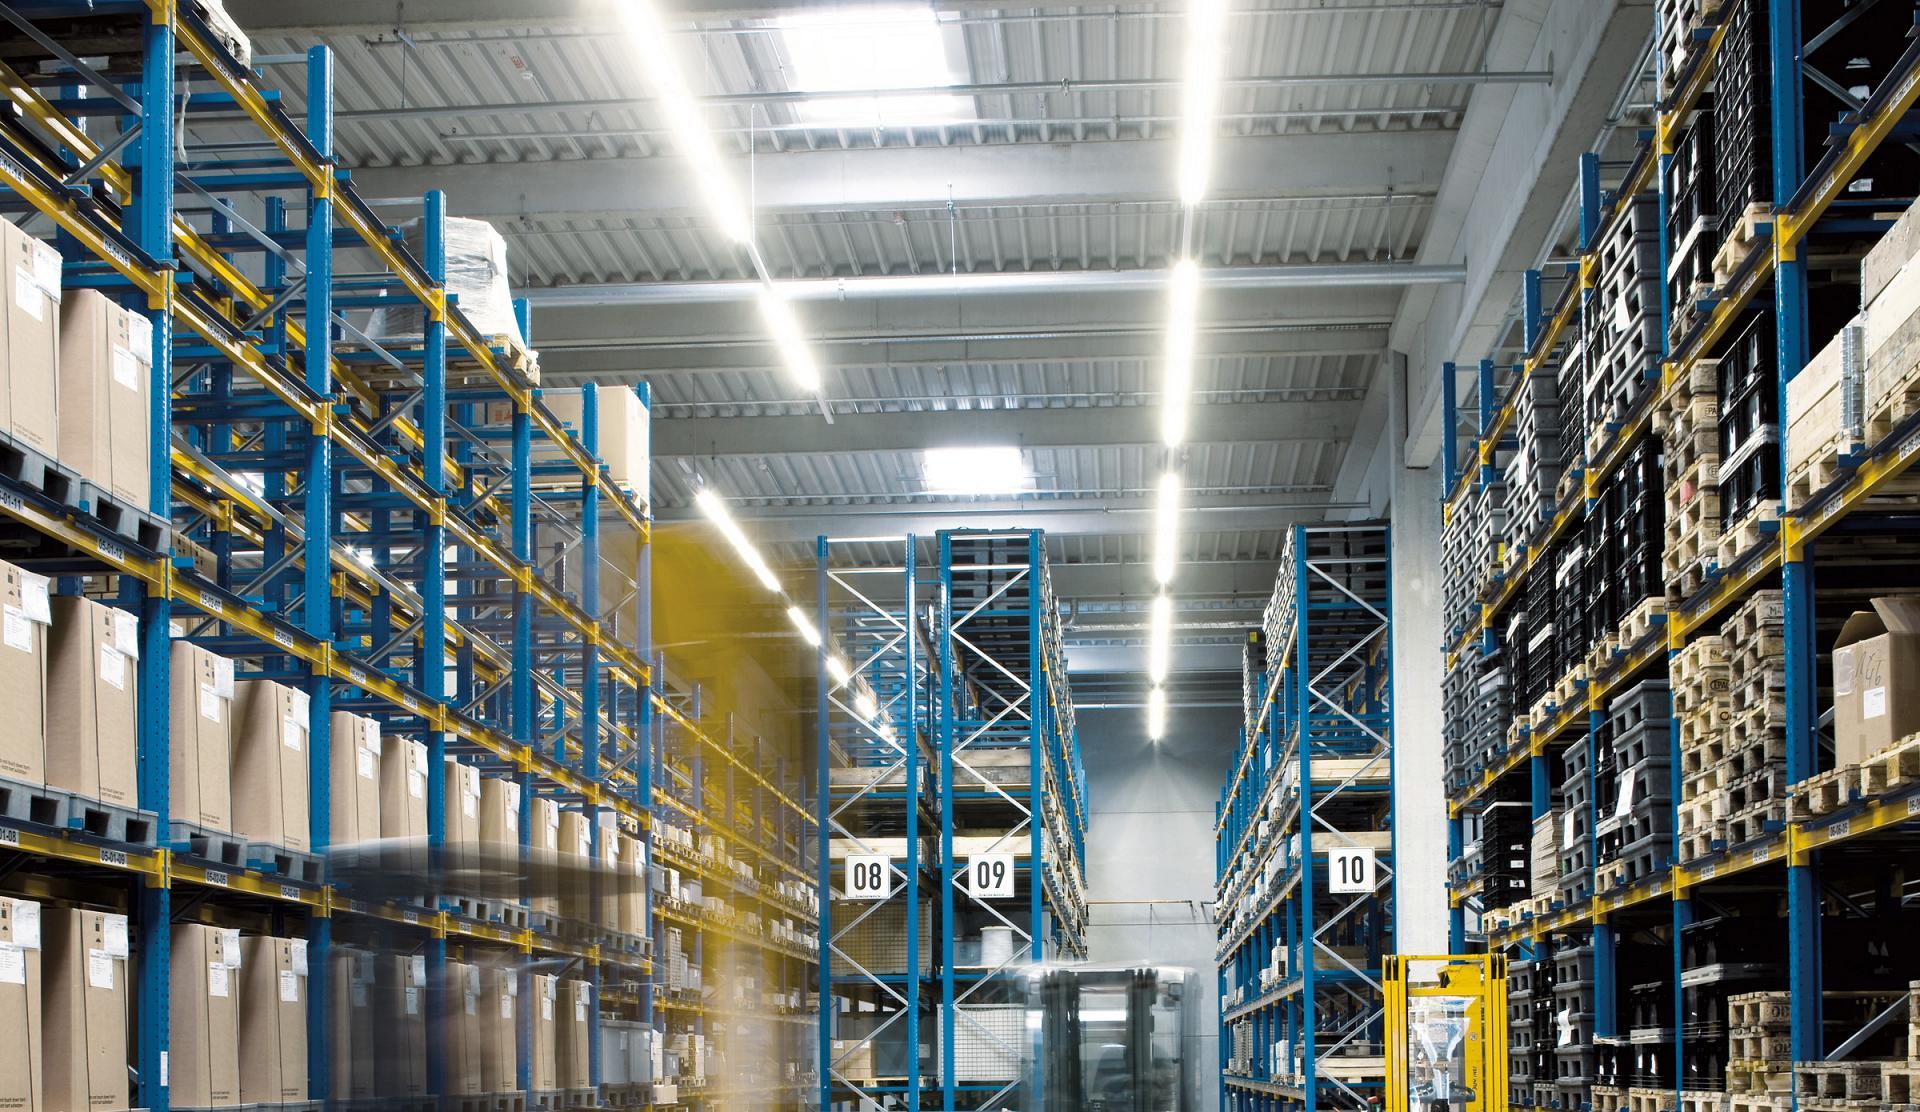 Industrial LED lighting - Industrial lighting by TRILUX